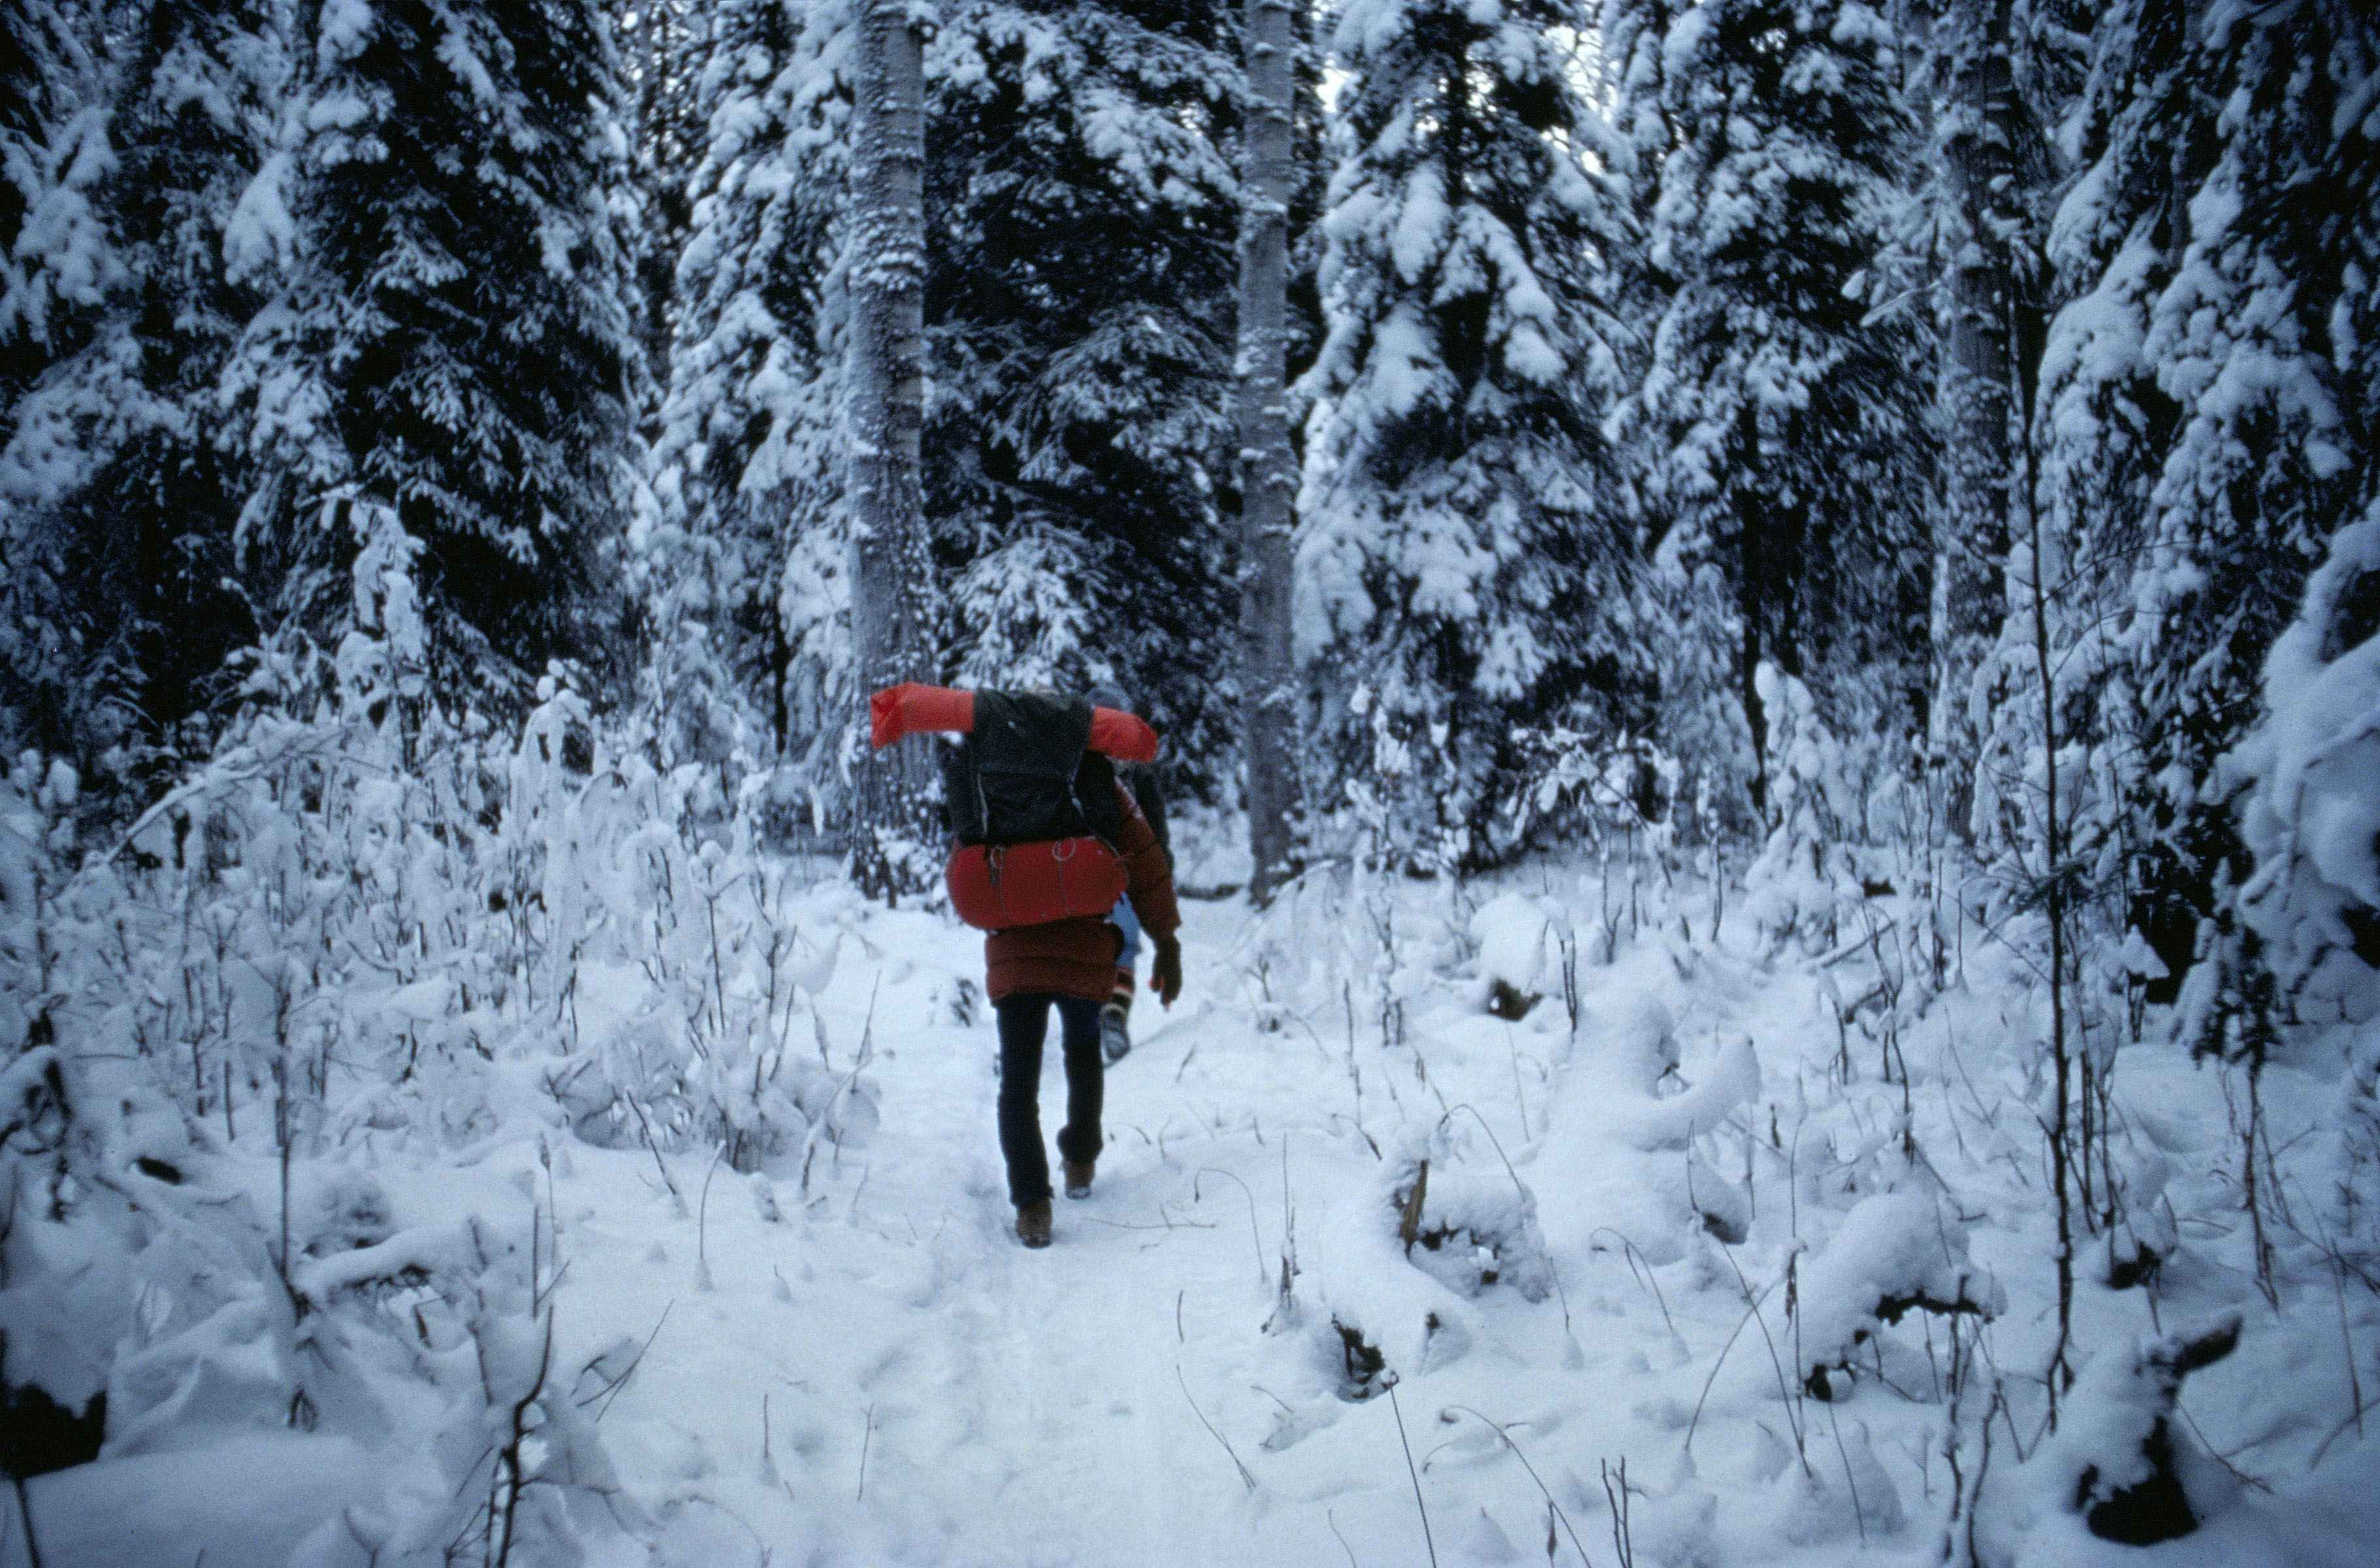 Winter camping and backpacking guide backpacking gear